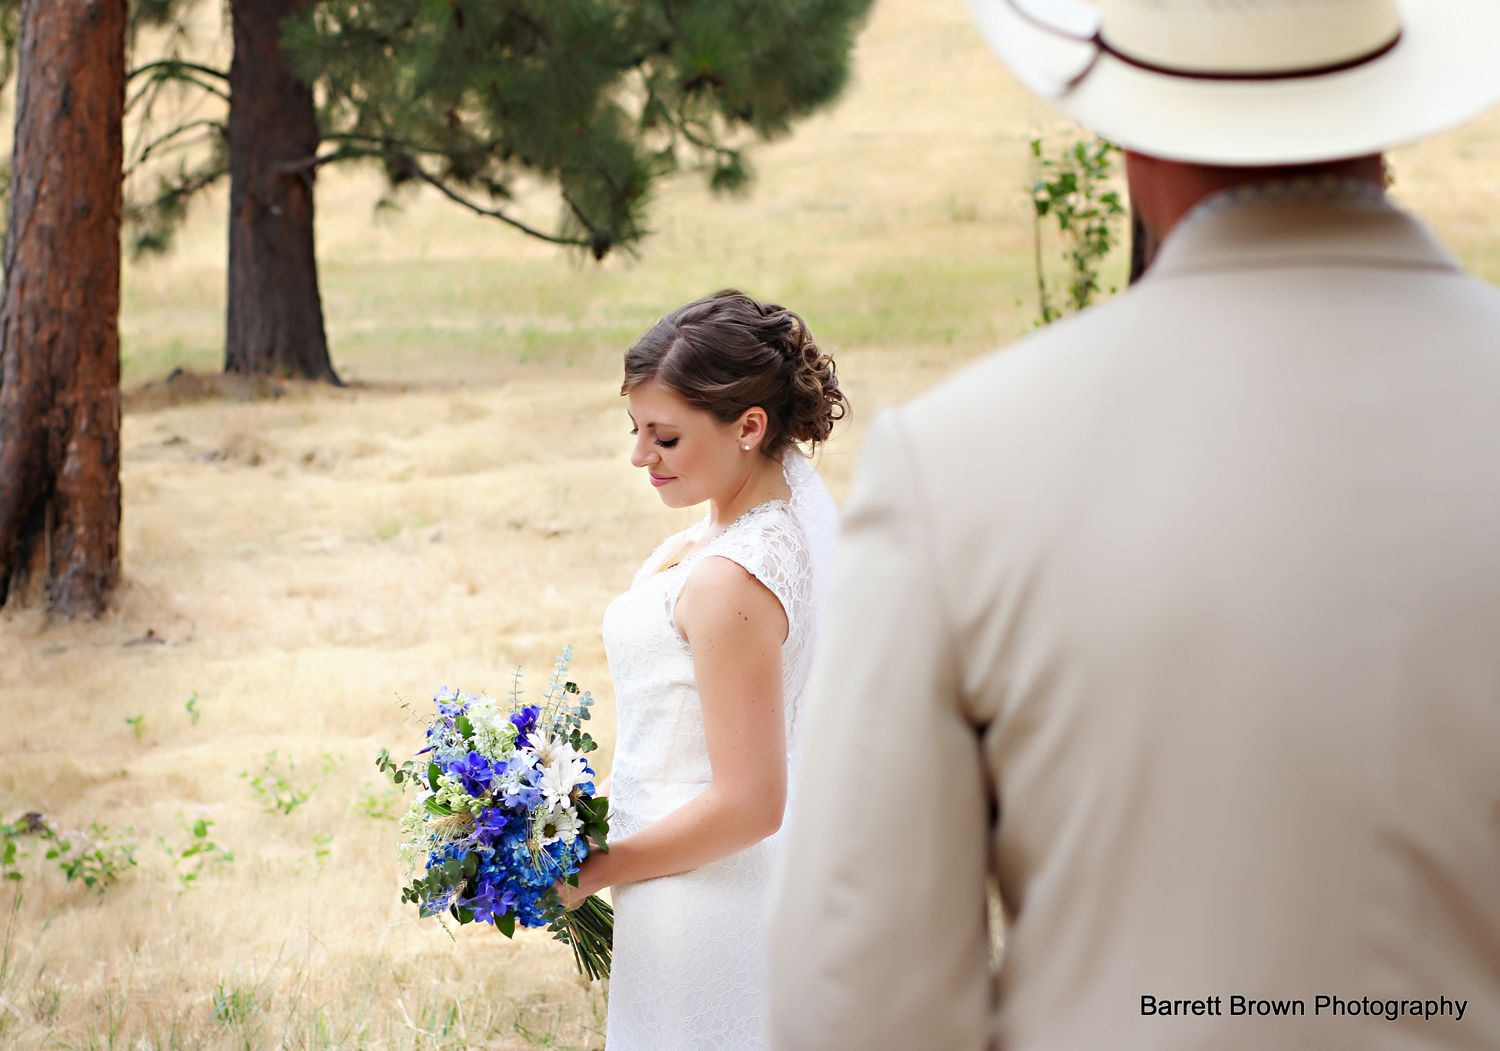 Bride in a field with two trees, holding bouquet of mostly blue flowers with man in hat and suit standing in foreground